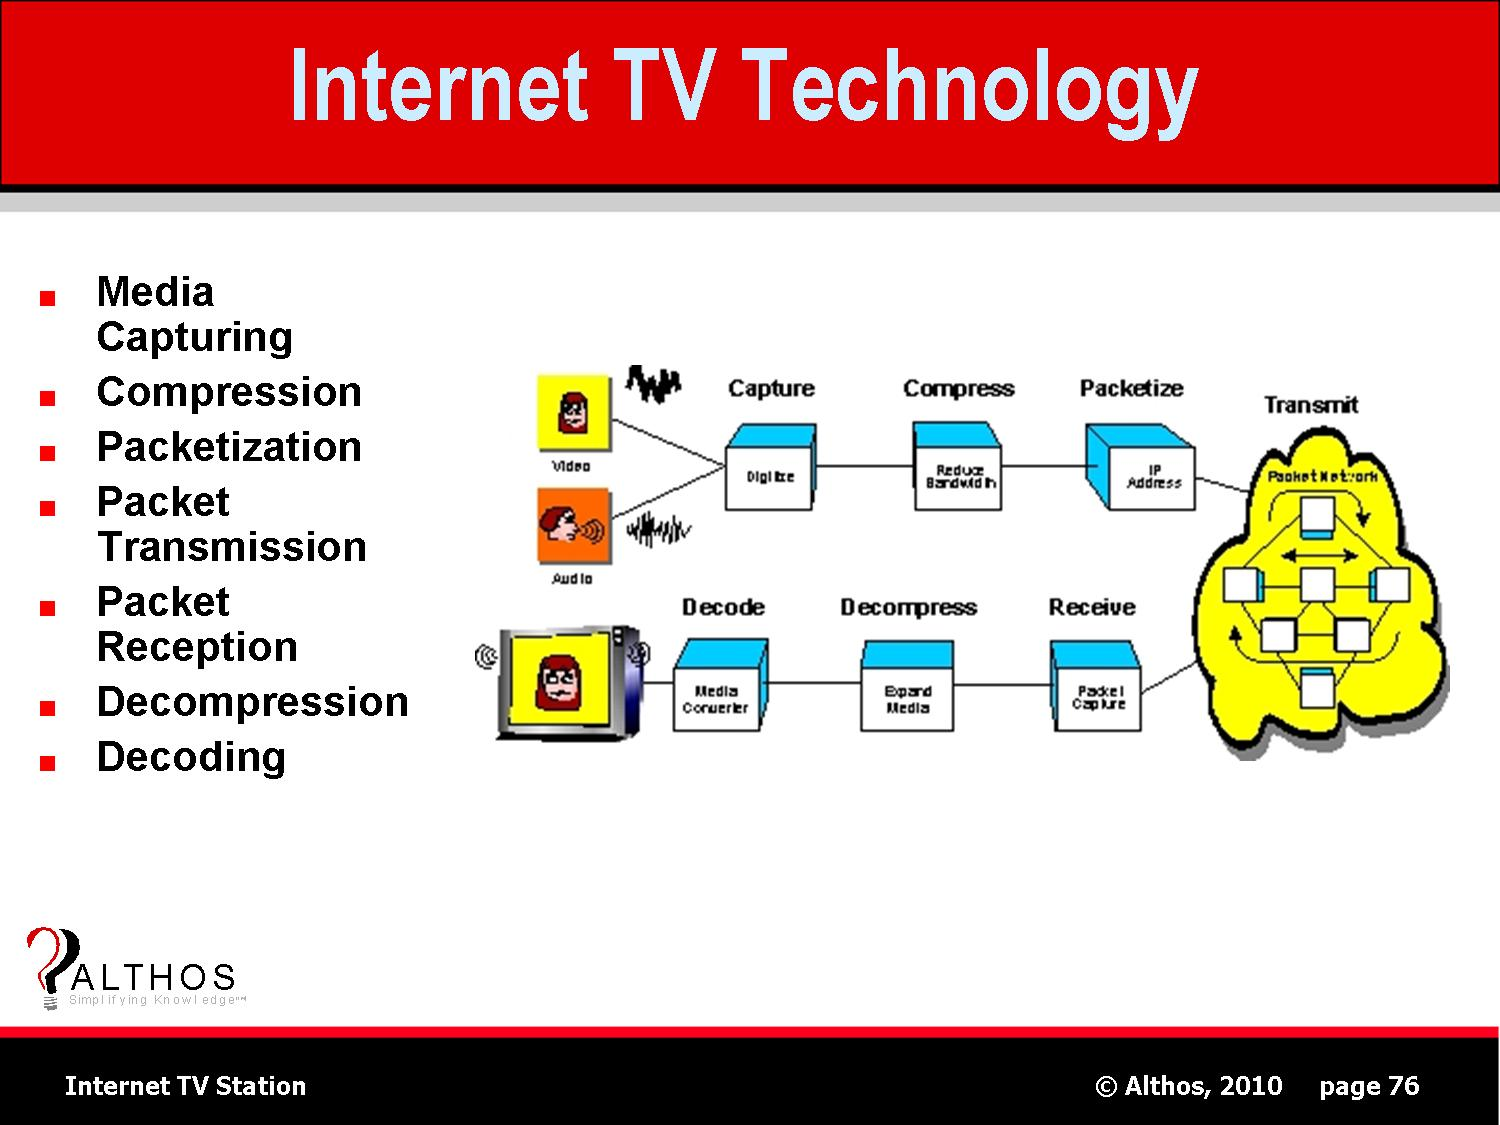 Internet-TV-station-technology.jpg